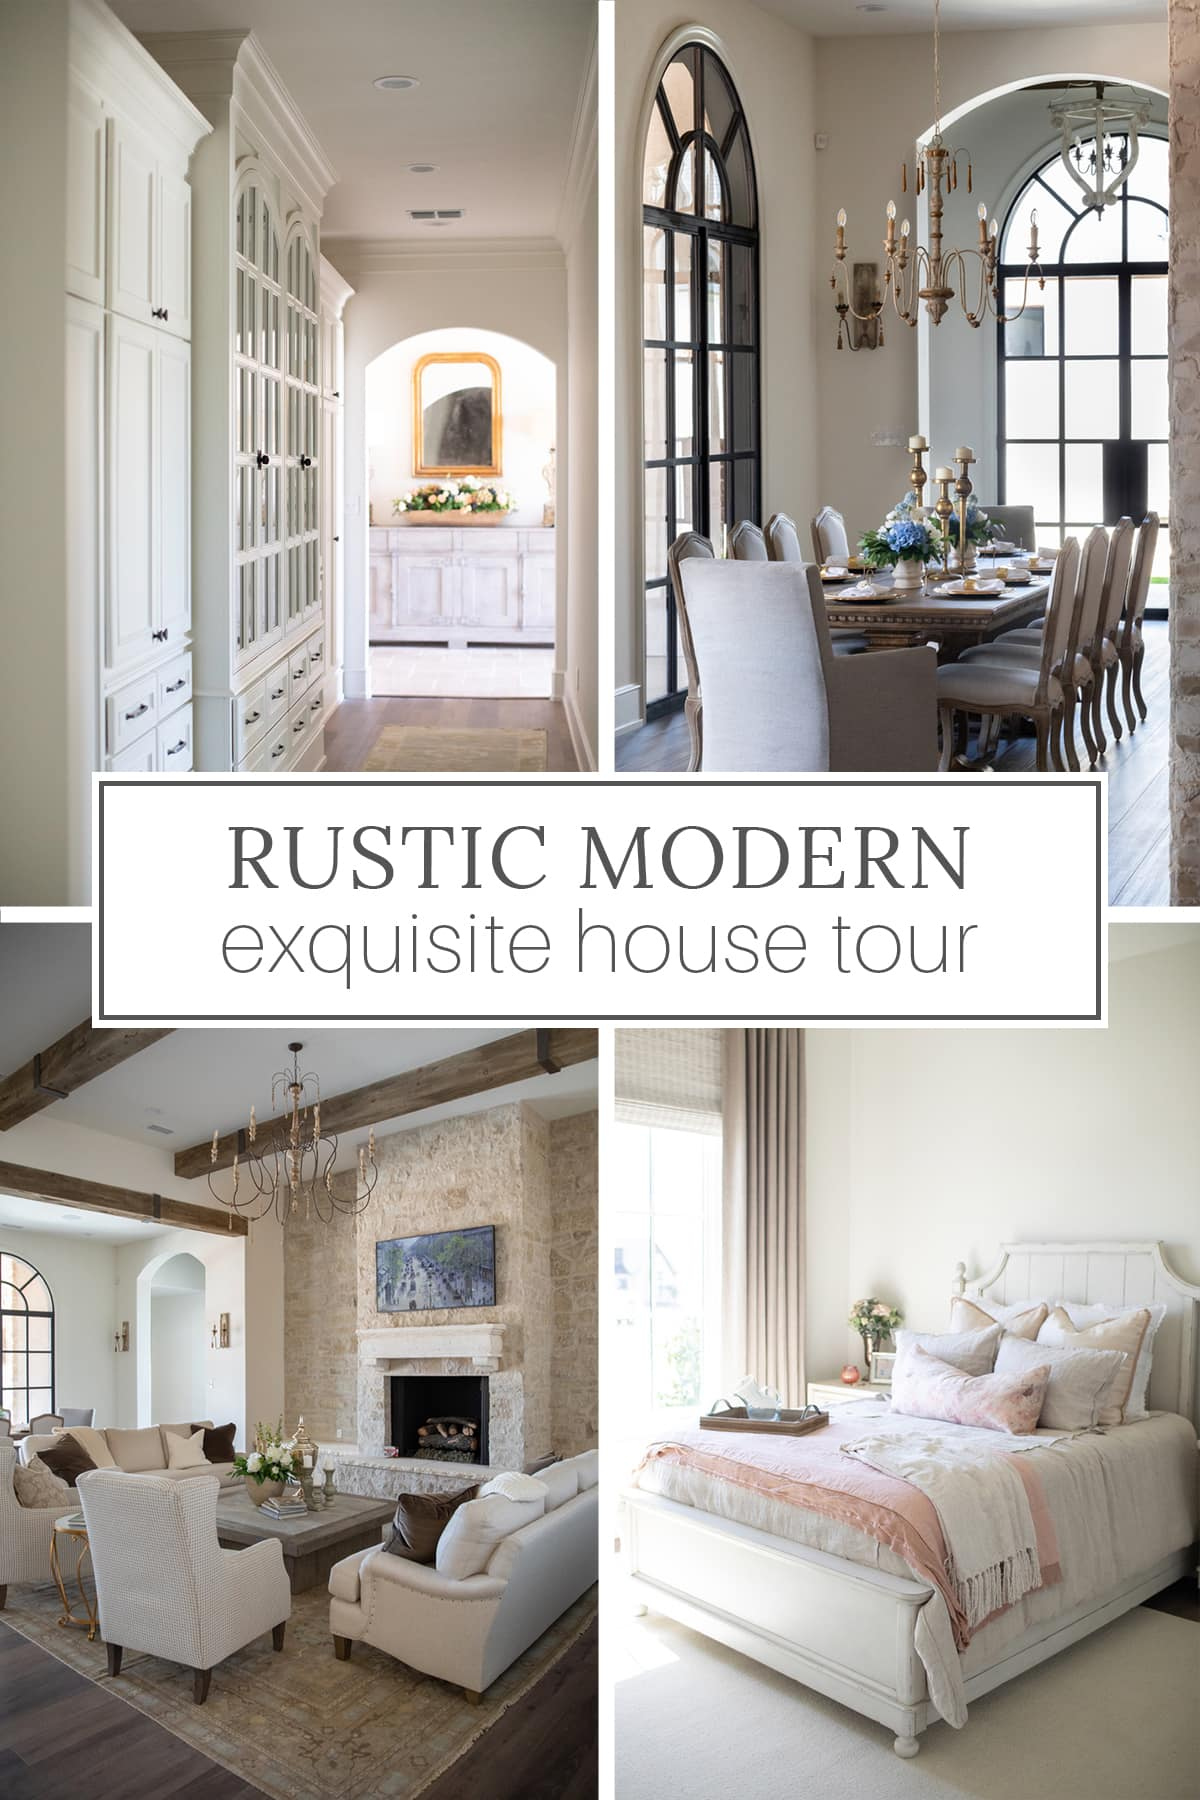 Exquisite rustic modern house tour